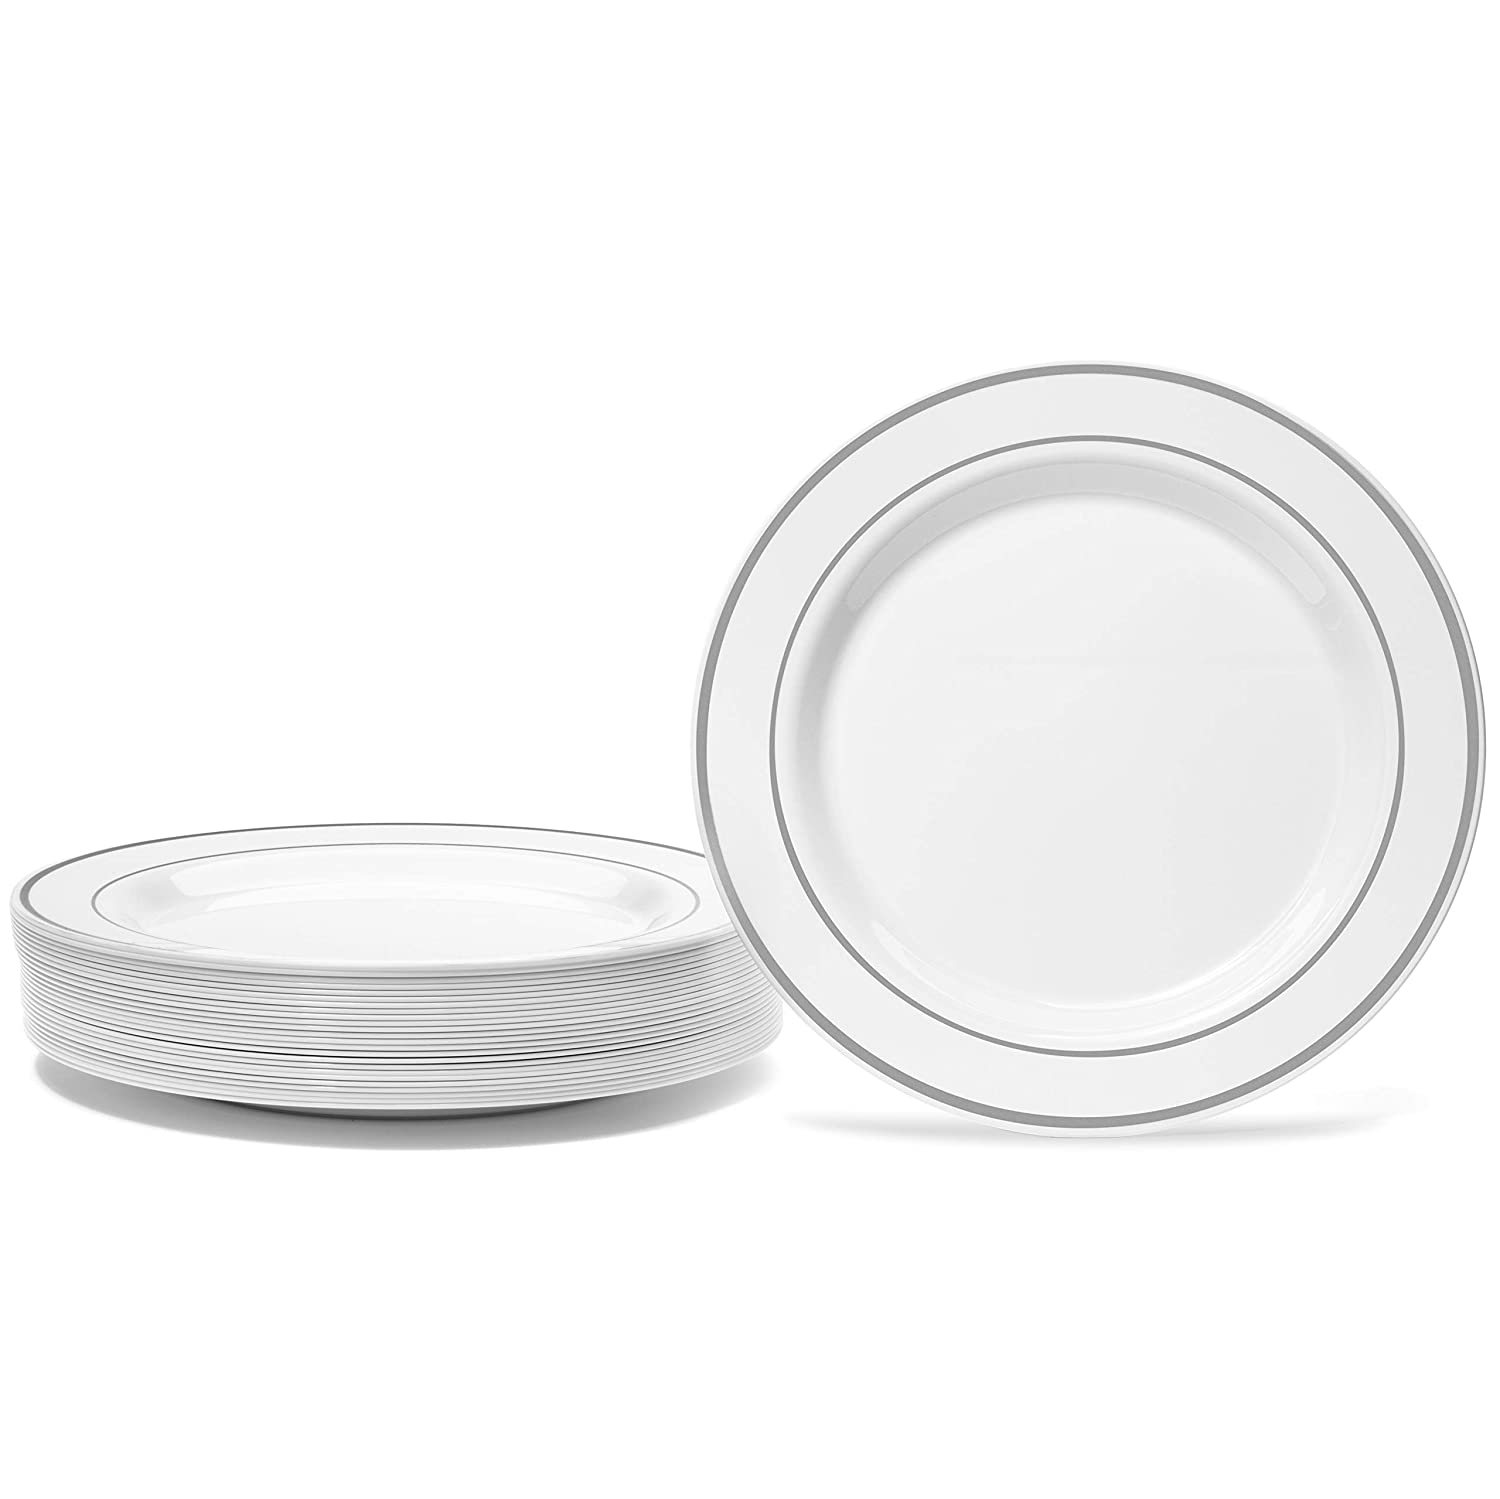 """Premium Hard Plastic Silver Rimmed White Plate Set By Oasis Creations – 50 x 9"""" - Disposable or Washable & Reusable - Party Supplies For Birthdays, Celebrations, Buffets, Fiestas & More"""